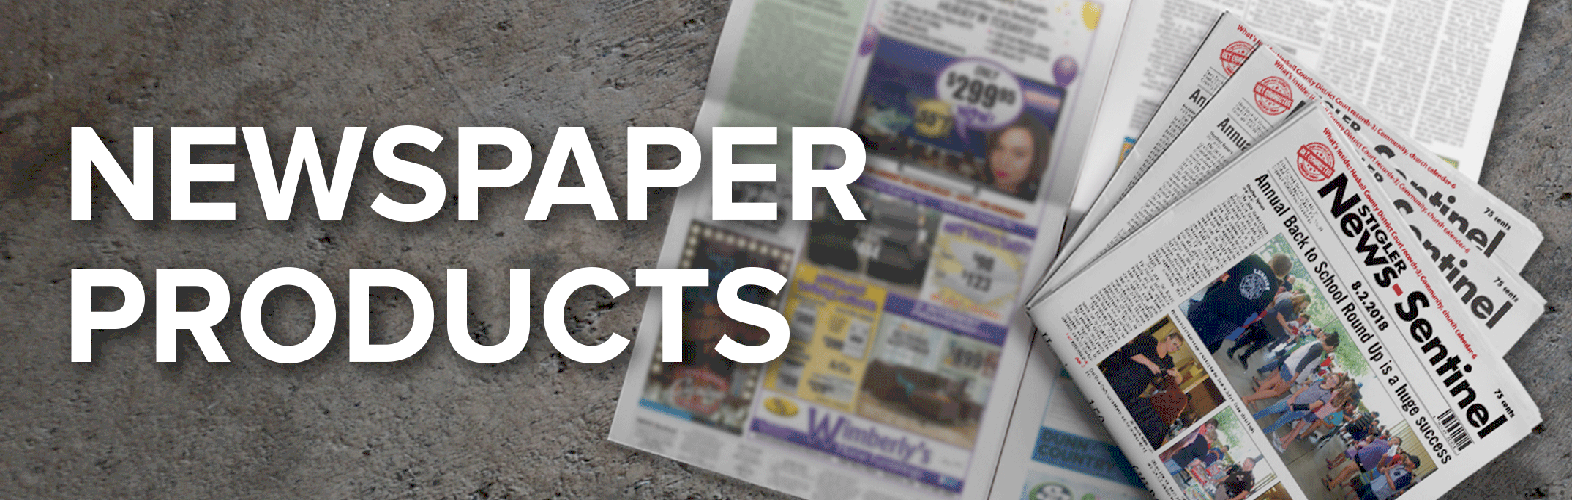 Newspaper Products